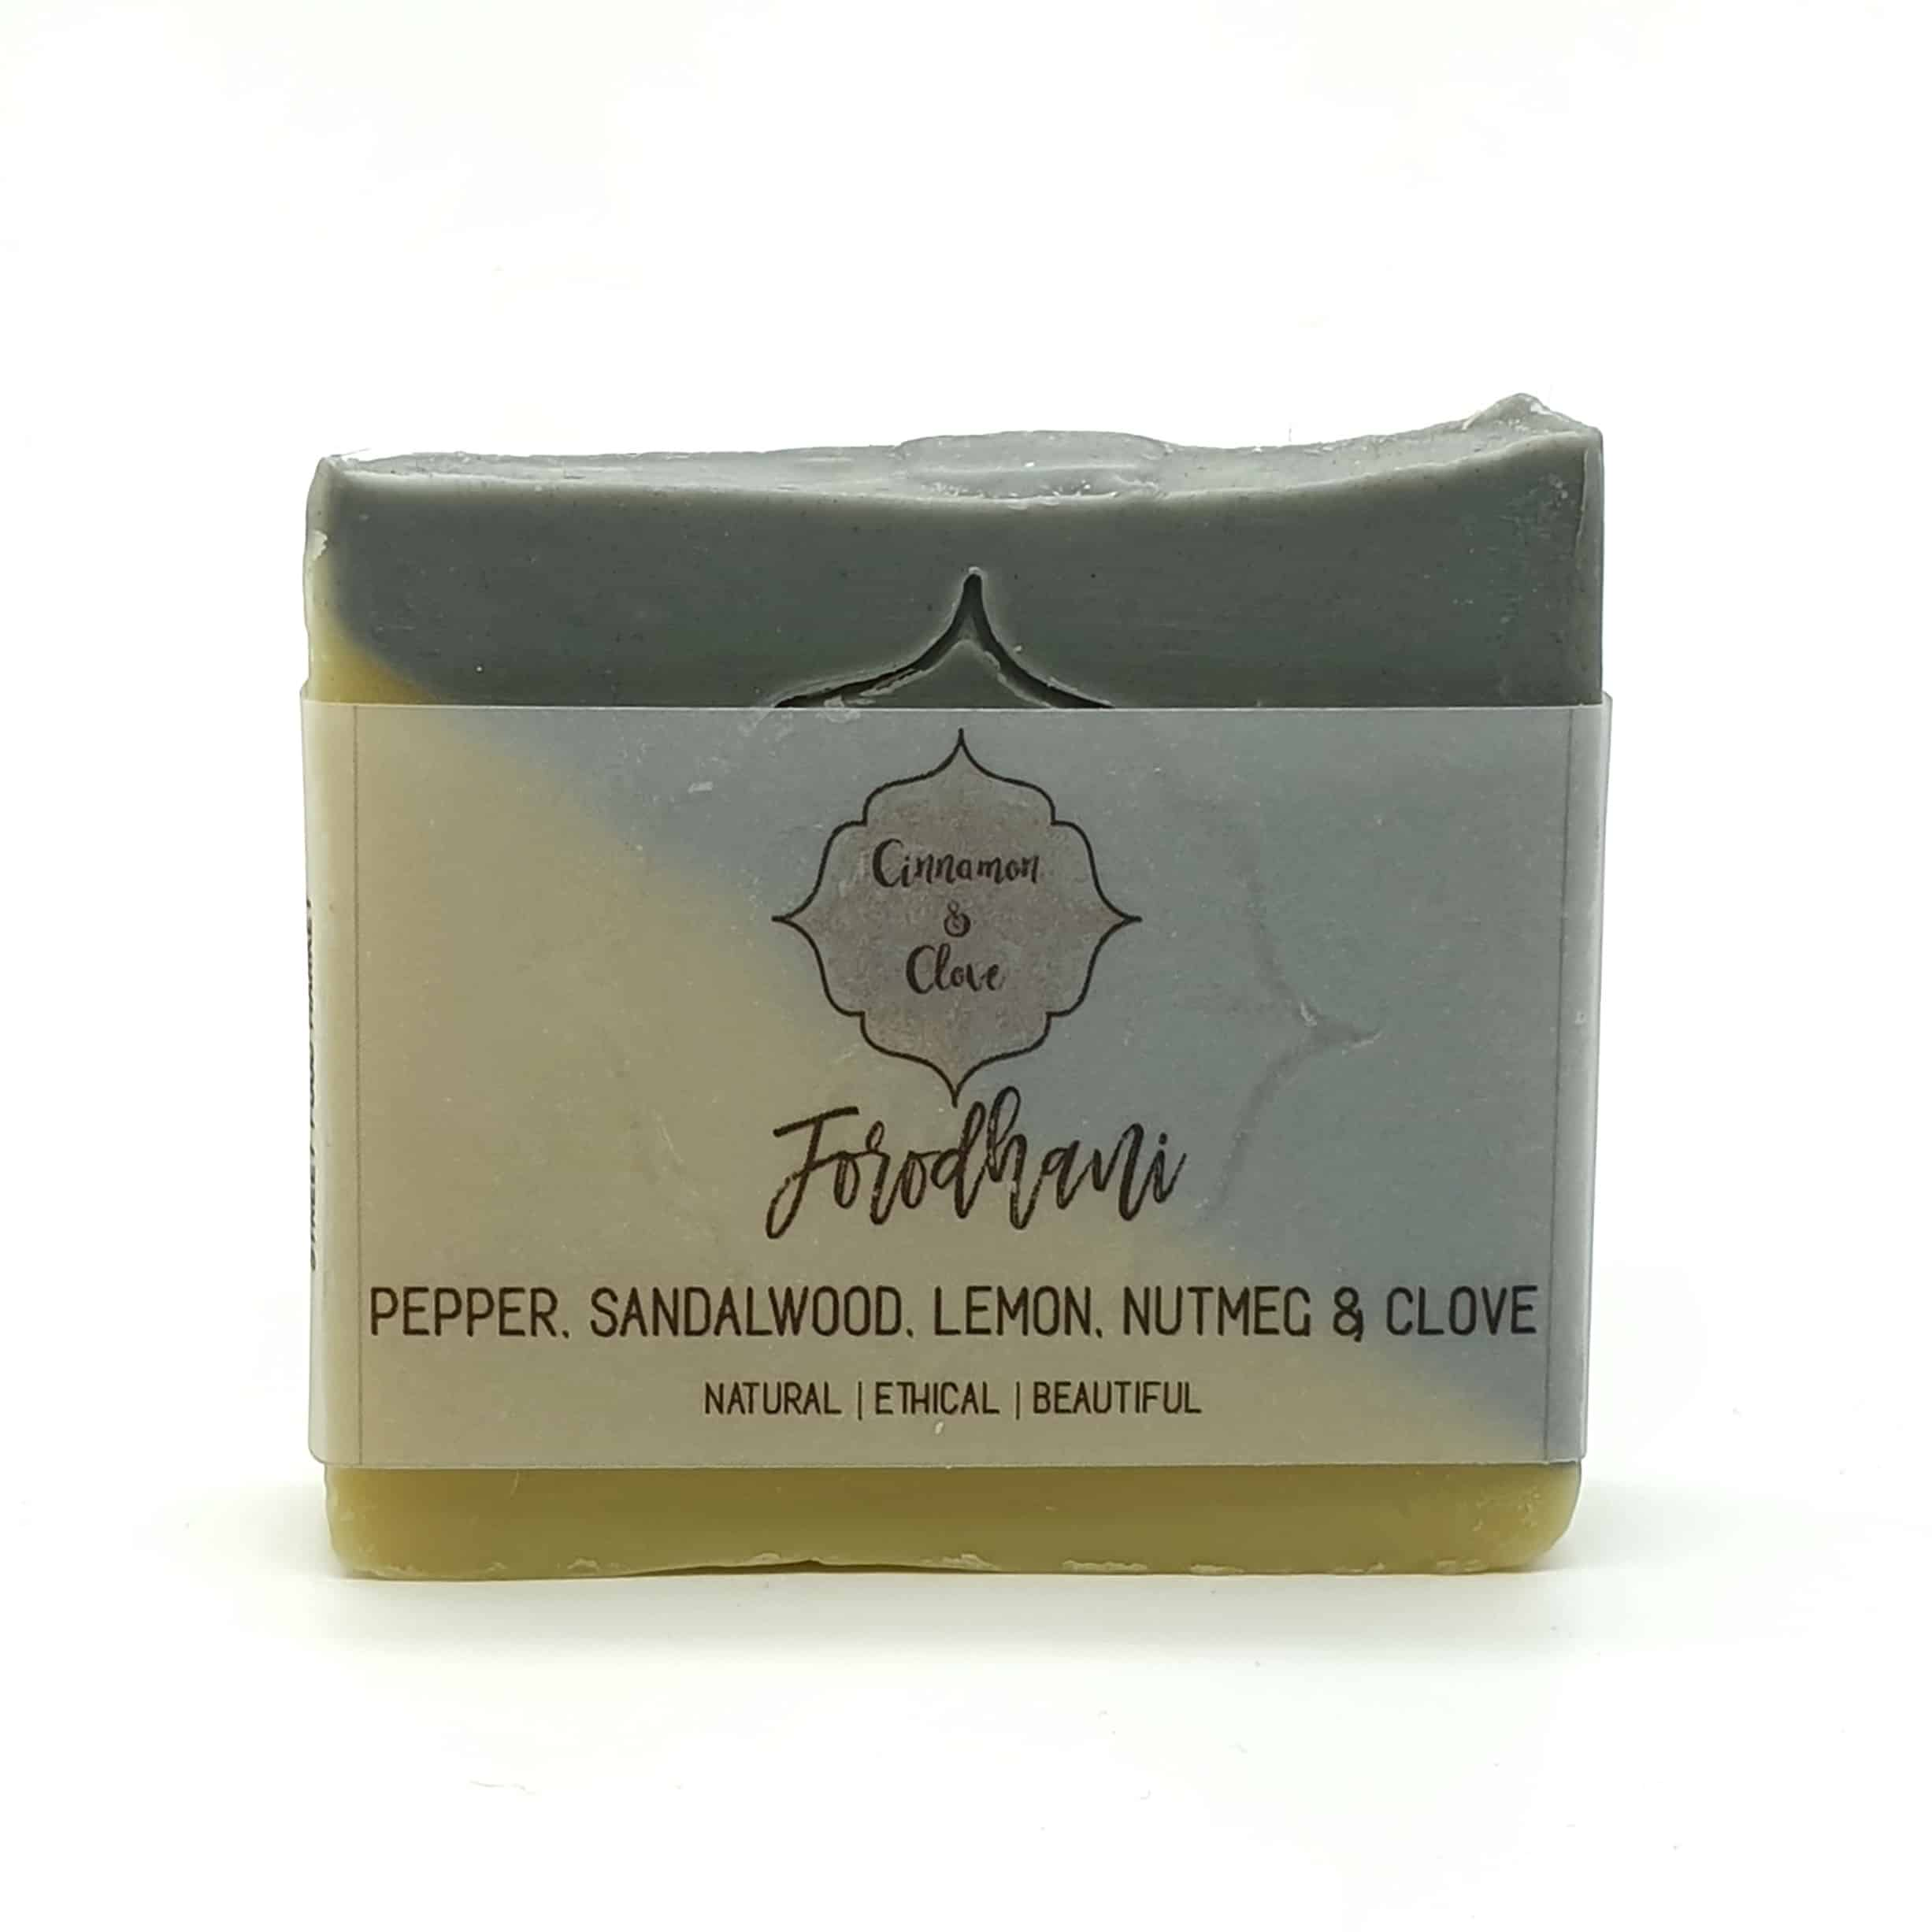 Forodhani – Handcrafted All Natural Artisan Soap By Cinnamon And Clove (Prahran)